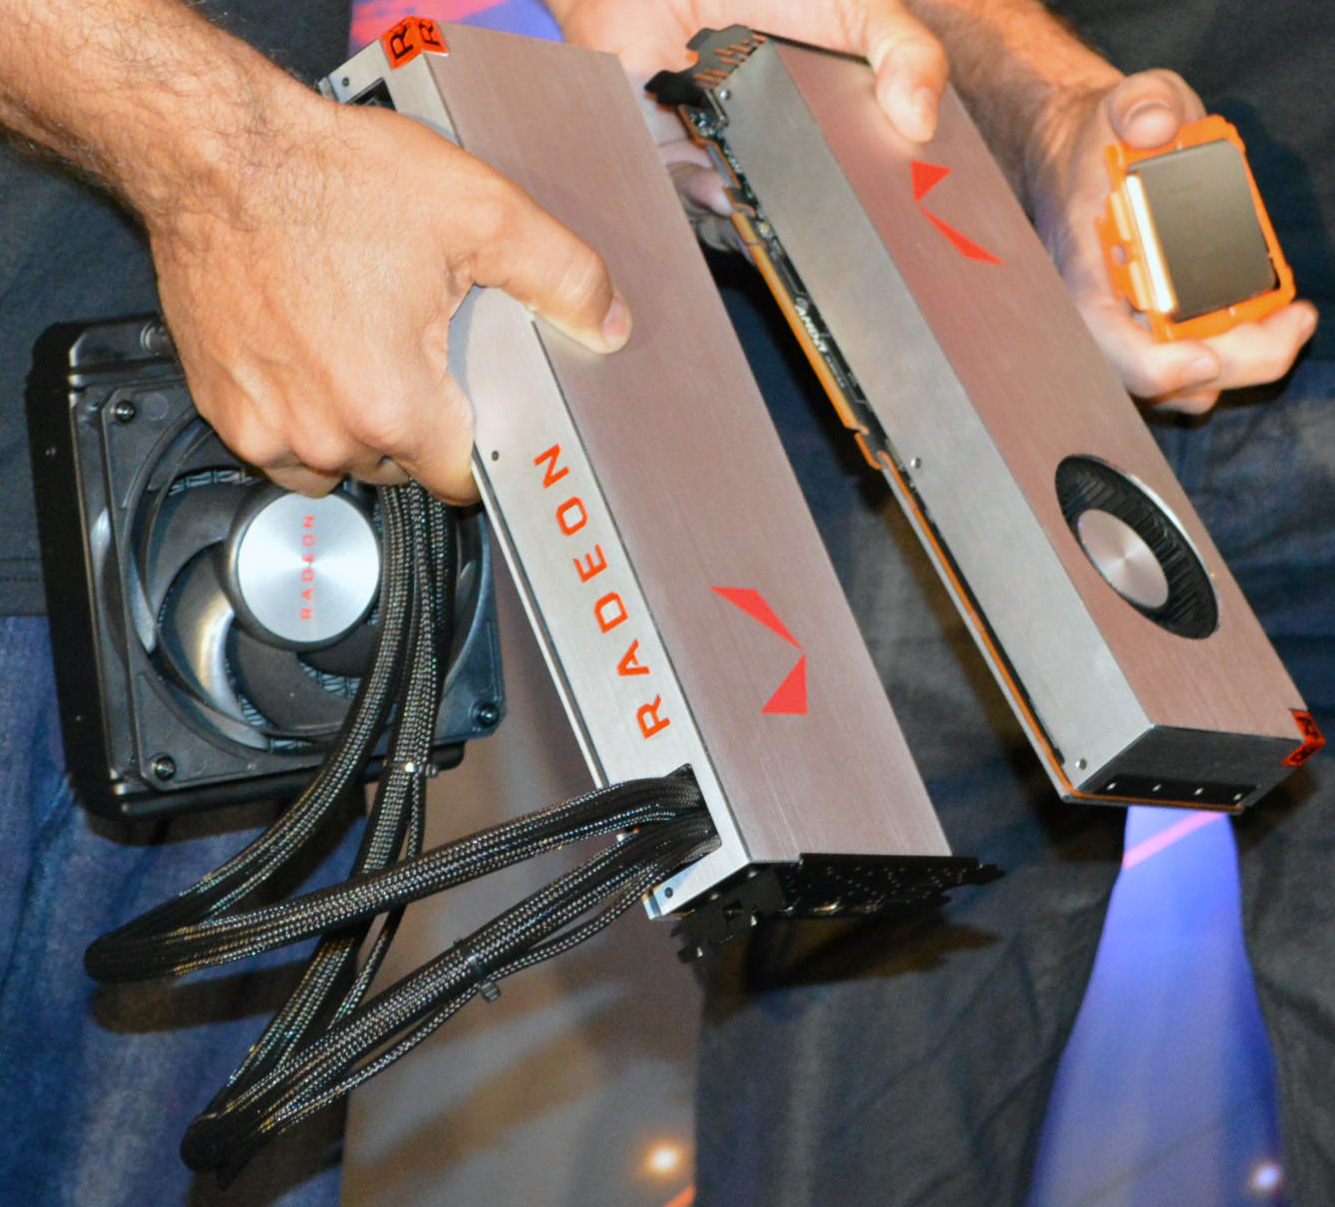 AMD RX Vega GPUs Finally Launched with Release Date and Pricing Info